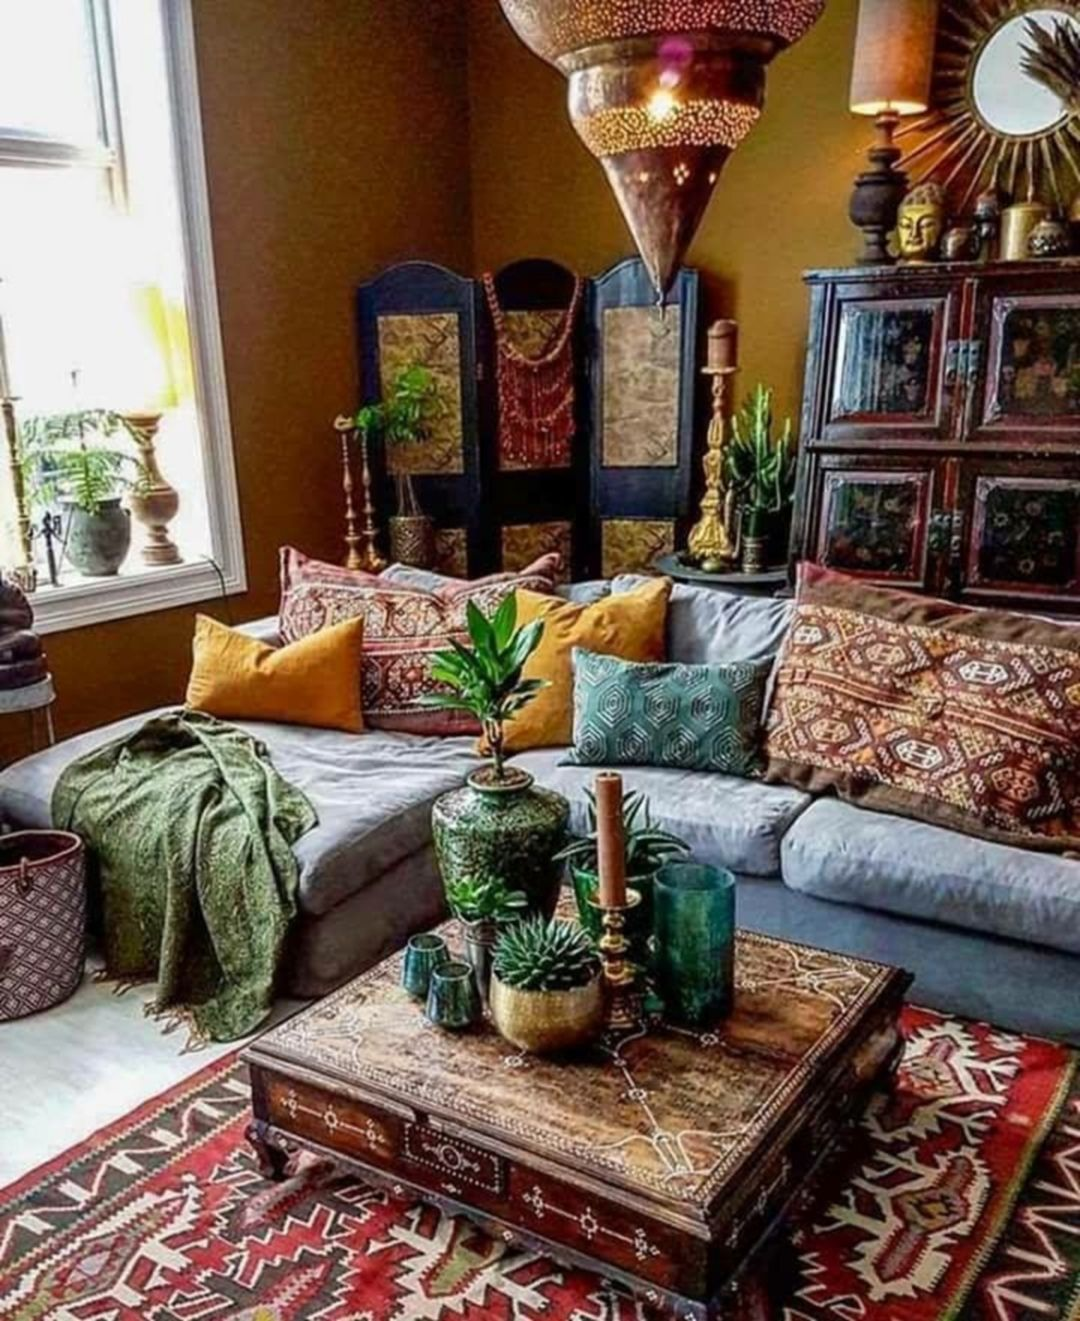 Marvelous 30 Best Hippie Bohemian Living Room Design Ideas That Can Make You Happy Https Bohemian Style Living Room Bohemian Living Rooms Living Room Decor